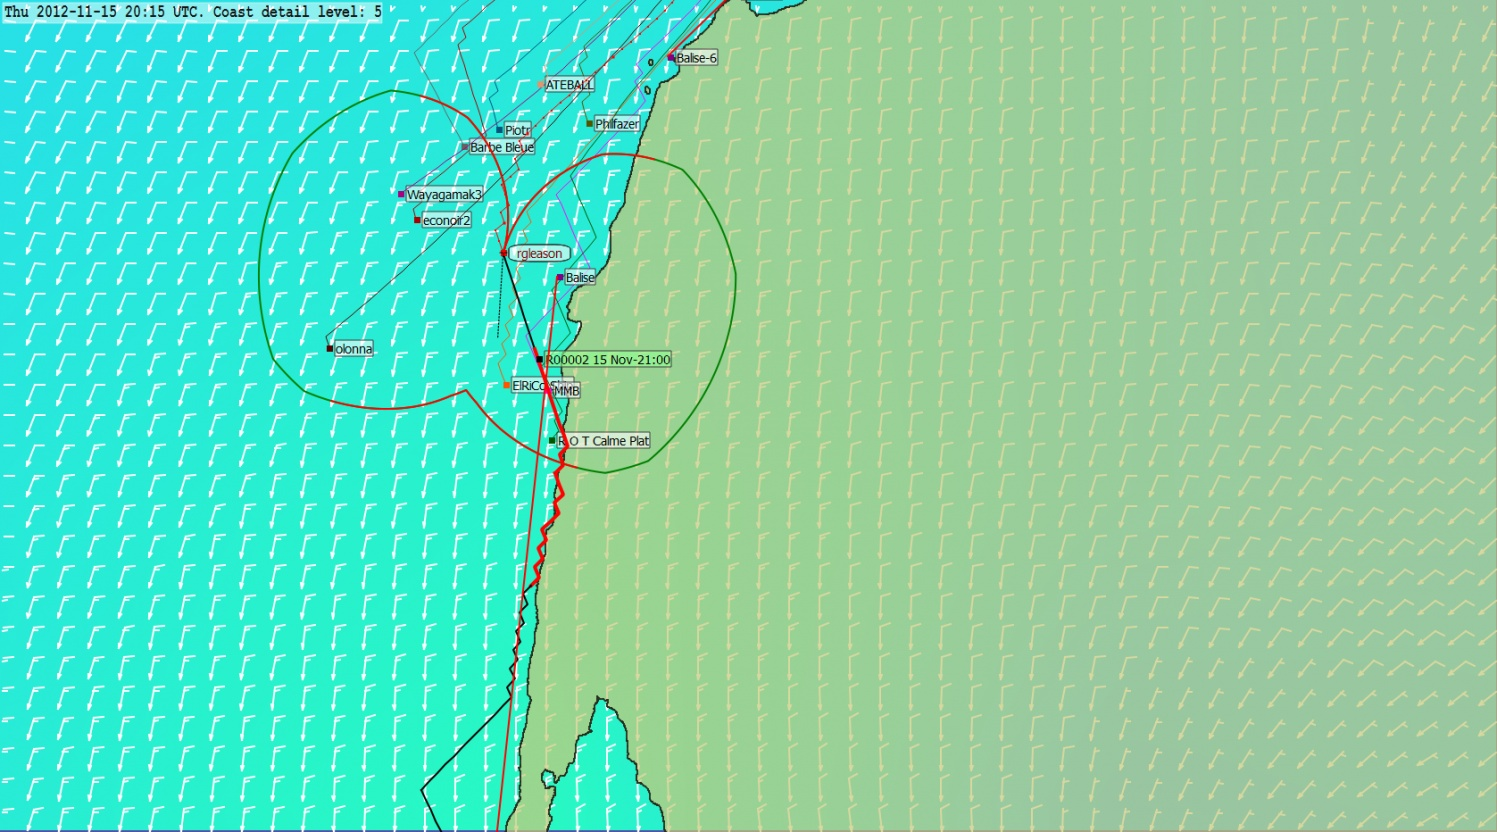 Click image for larger version  Name:Vendee-Routing-HitsLand.jpg Views:46 Size:412.6 KB ID:49755